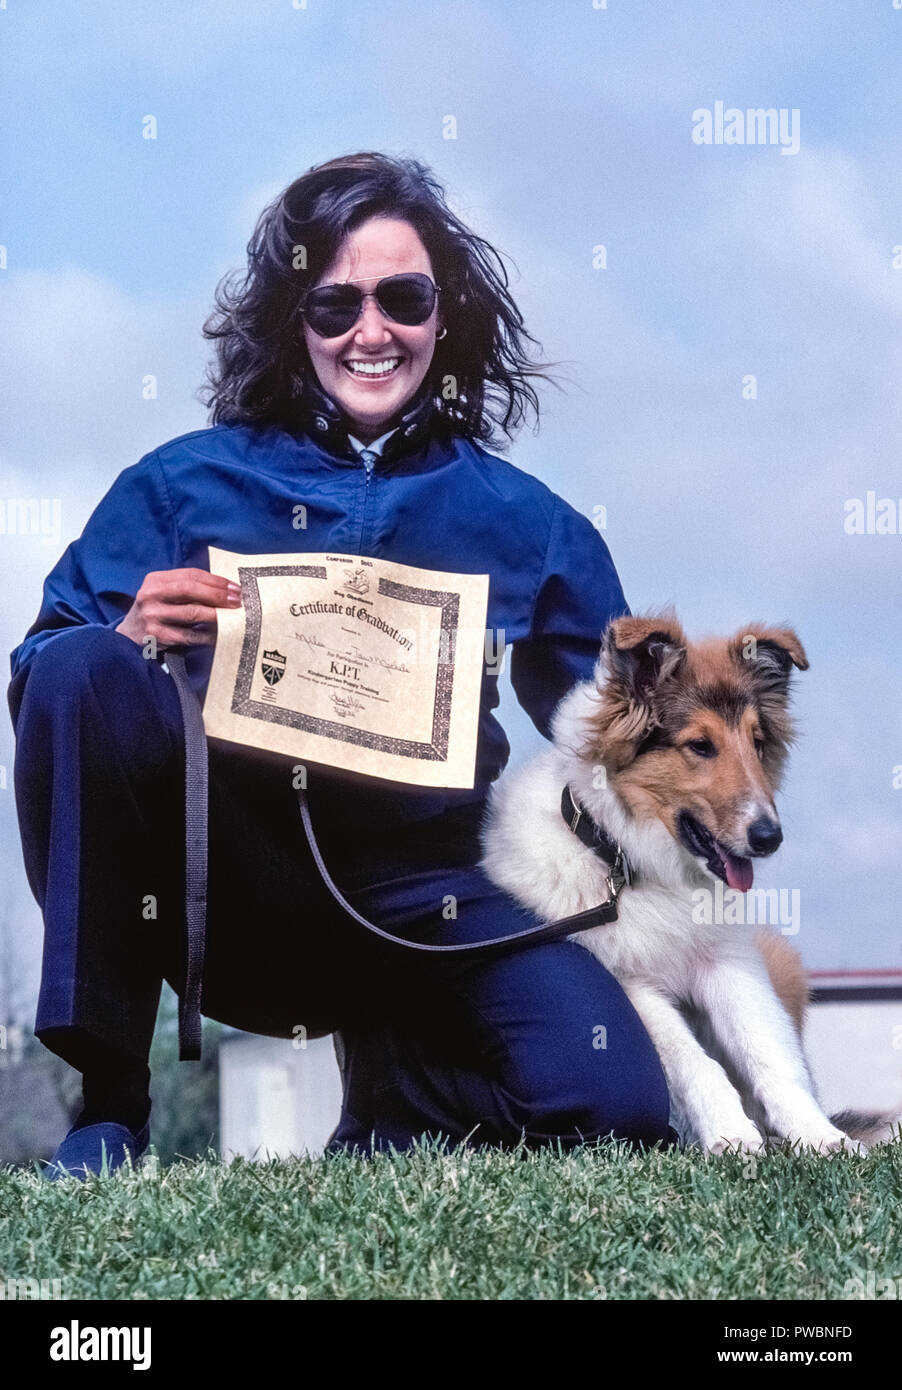 This proud female owner of a young tricolor collie displays the Certificate of Graduation her dog received after completing Kindergarten Puppy Training (K.P.T.), a pet behavioral program that was offered in the 1970s by the city recreation department of Laguna Beach, California, USA. - Stock Image